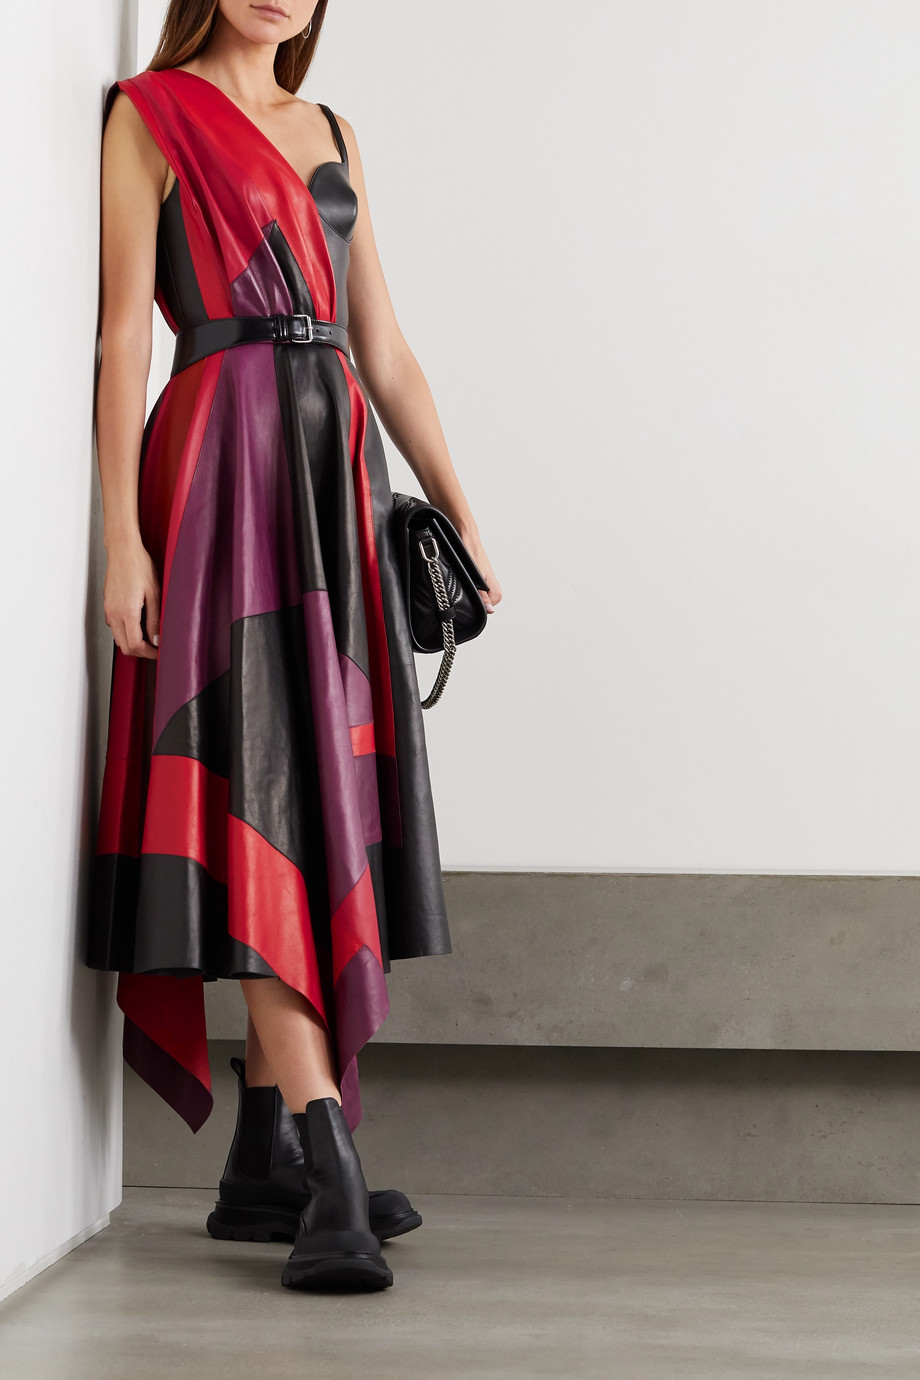 Alexander McQueen Asymmetrisches Kleid aus Leder in Colour-Block-Optik